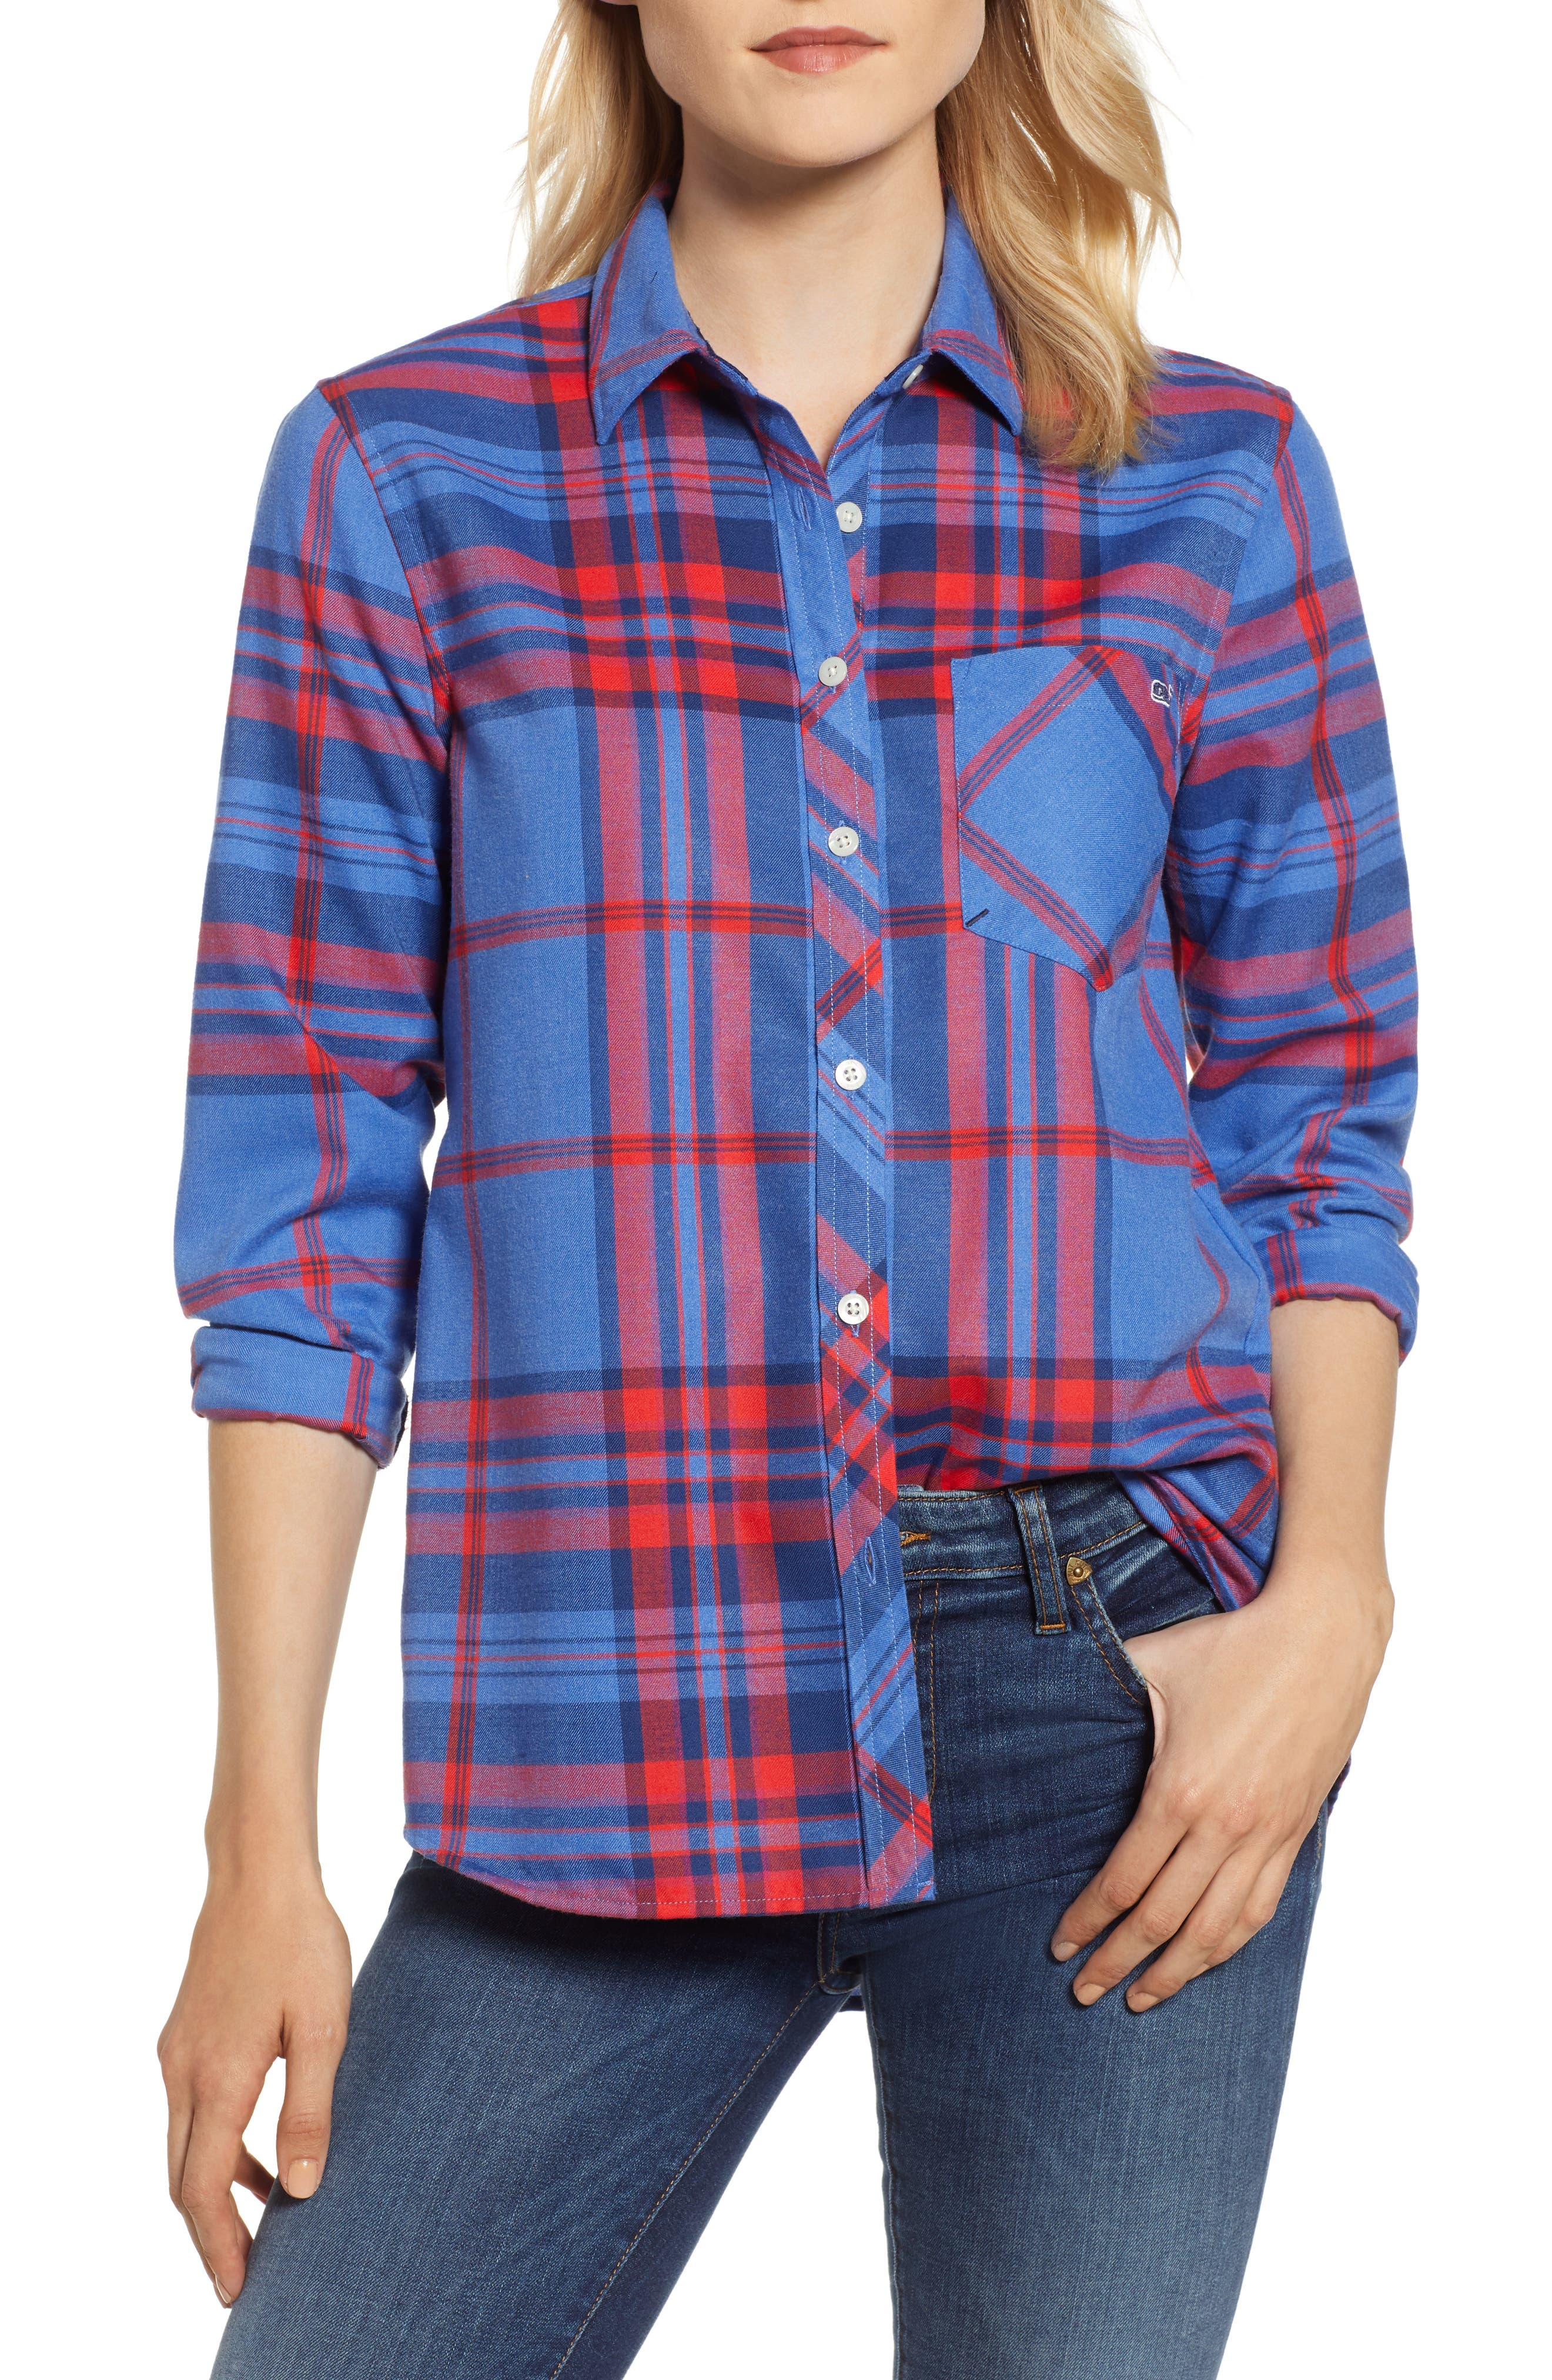 Northern Plaid Performance Flannel Shirt,                             Main thumbnail 1, color,                             DAZZLING BLUE